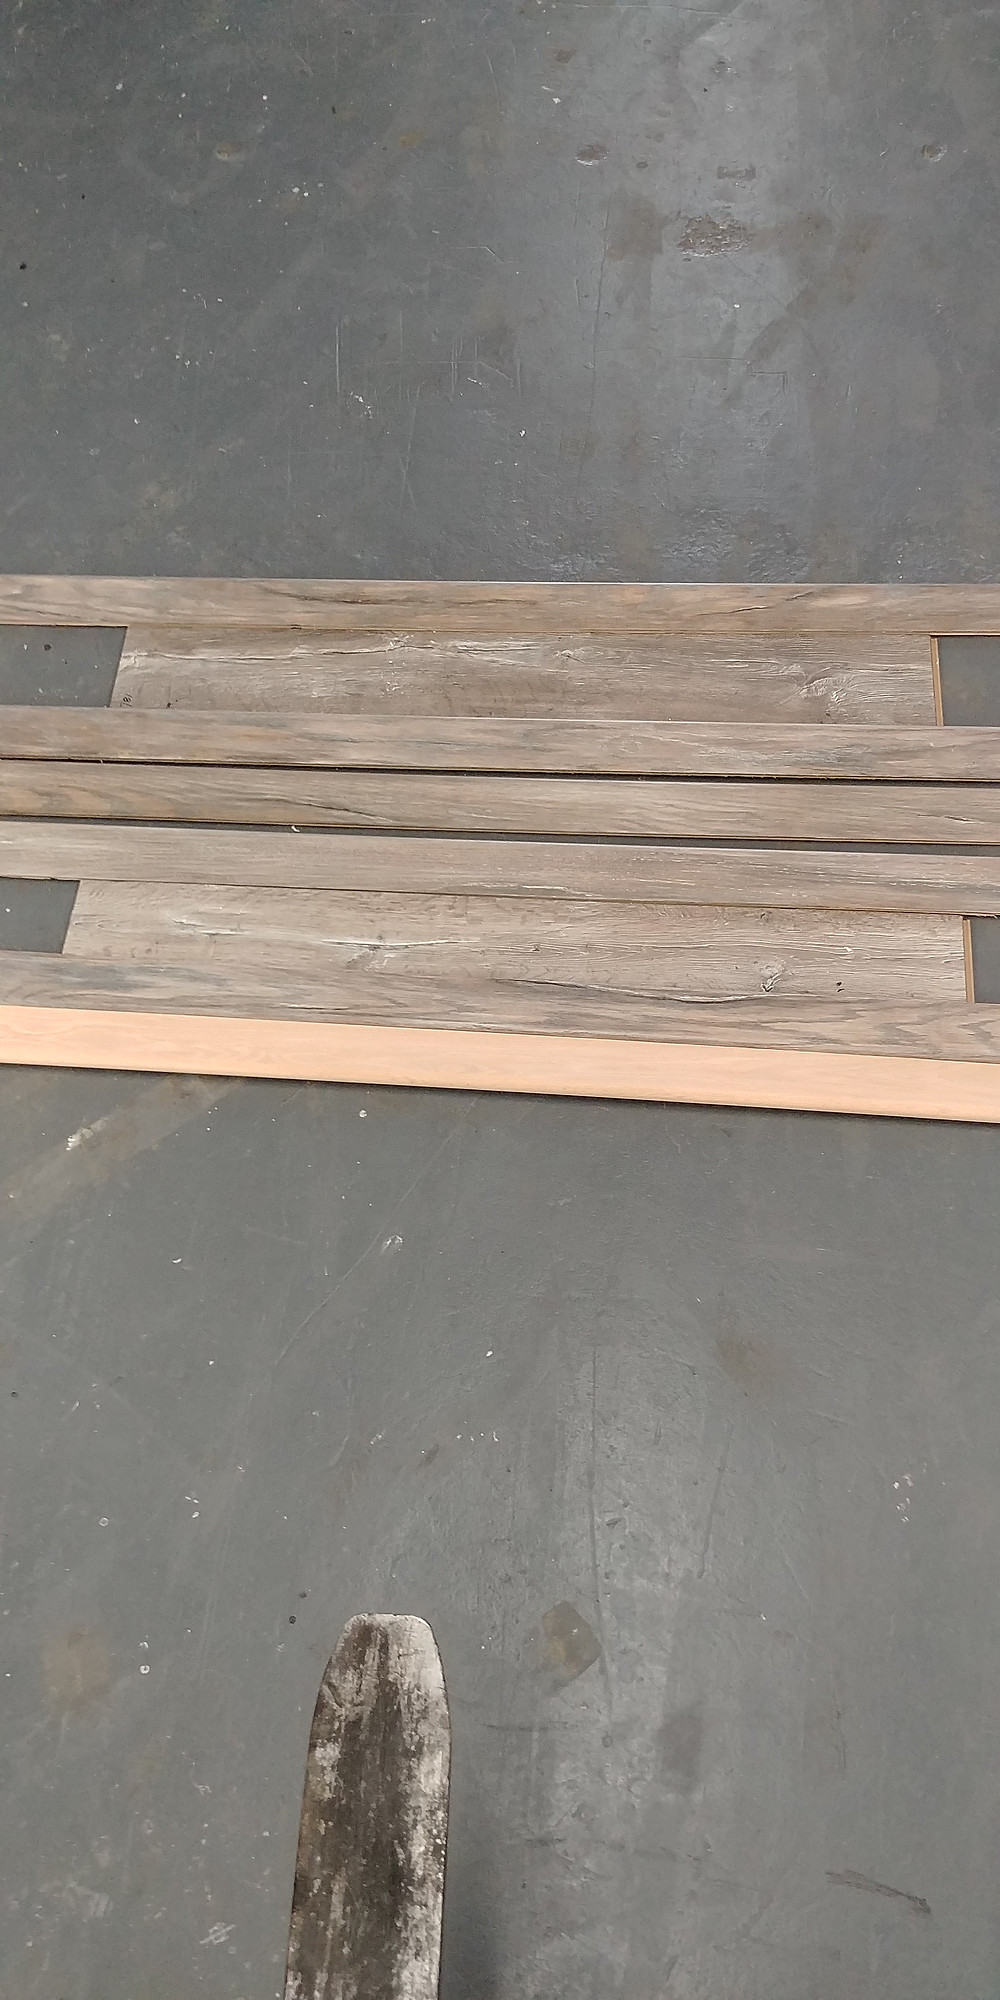 Red Oak stair nose finished in house to blend with rustic laminate flooring